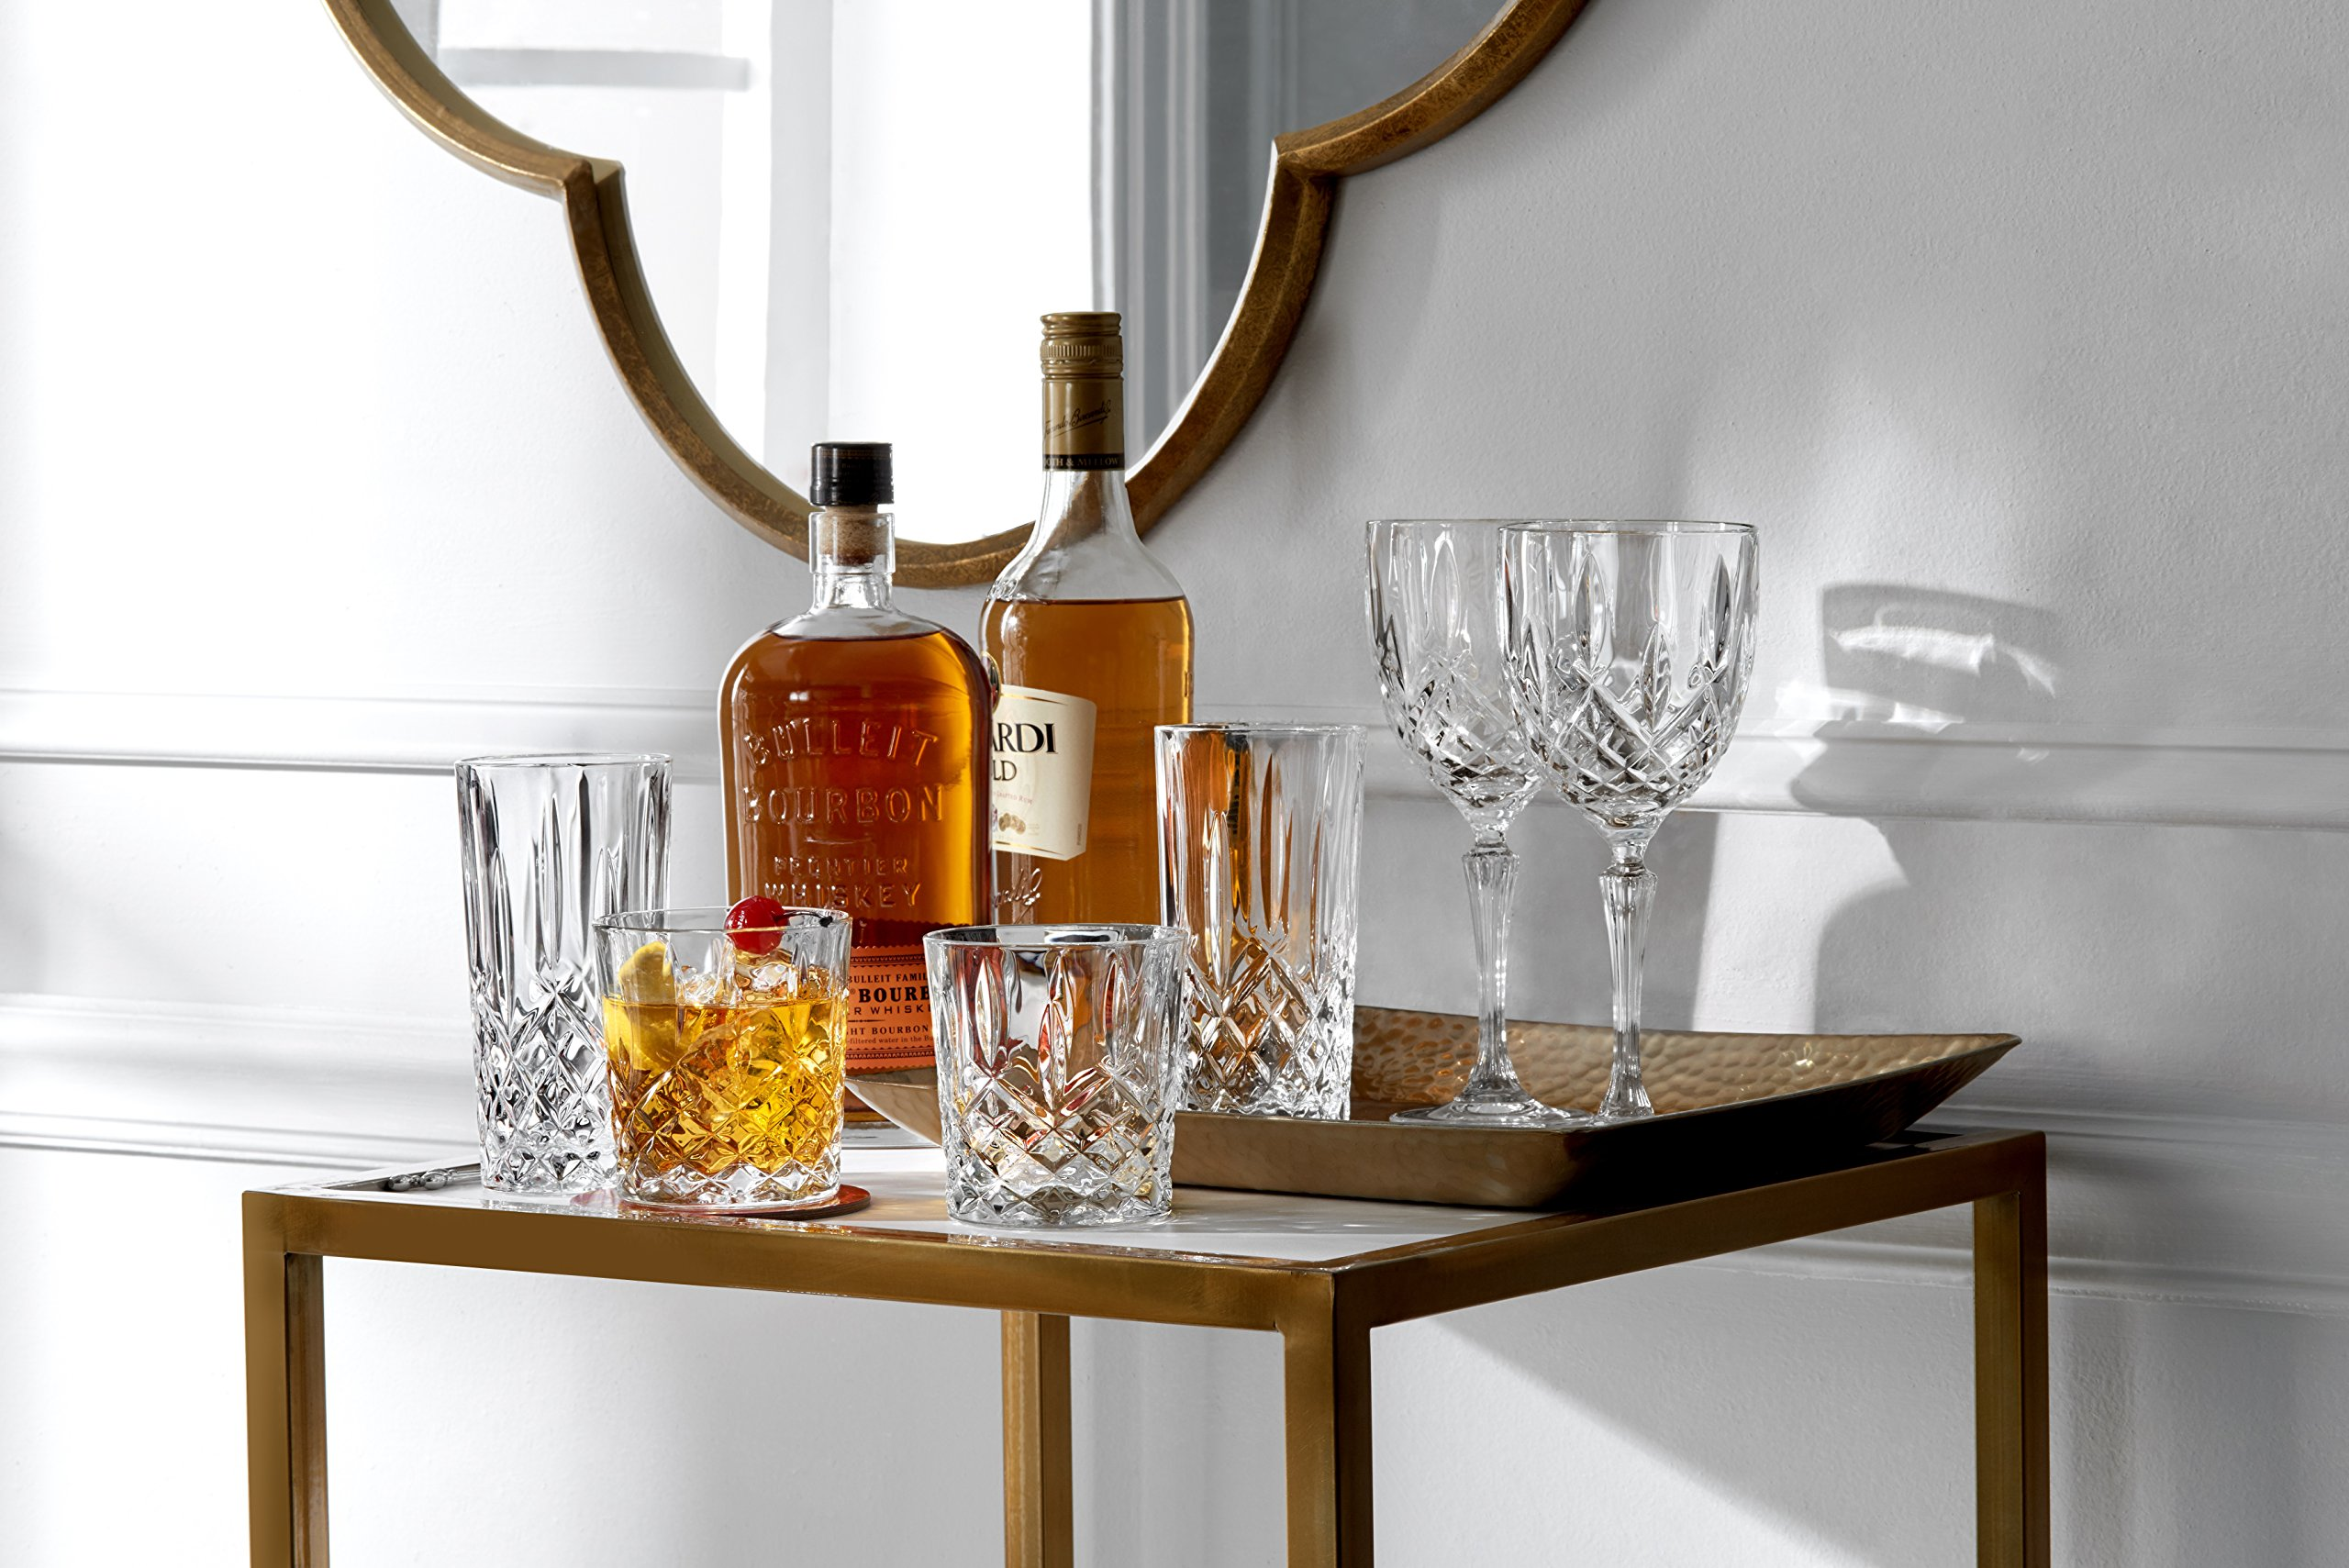 Marquis by Waterford 165118 Markham Double Old Fashioned Glasses, Set of 4 by Marquis By Waterford (Image #2)